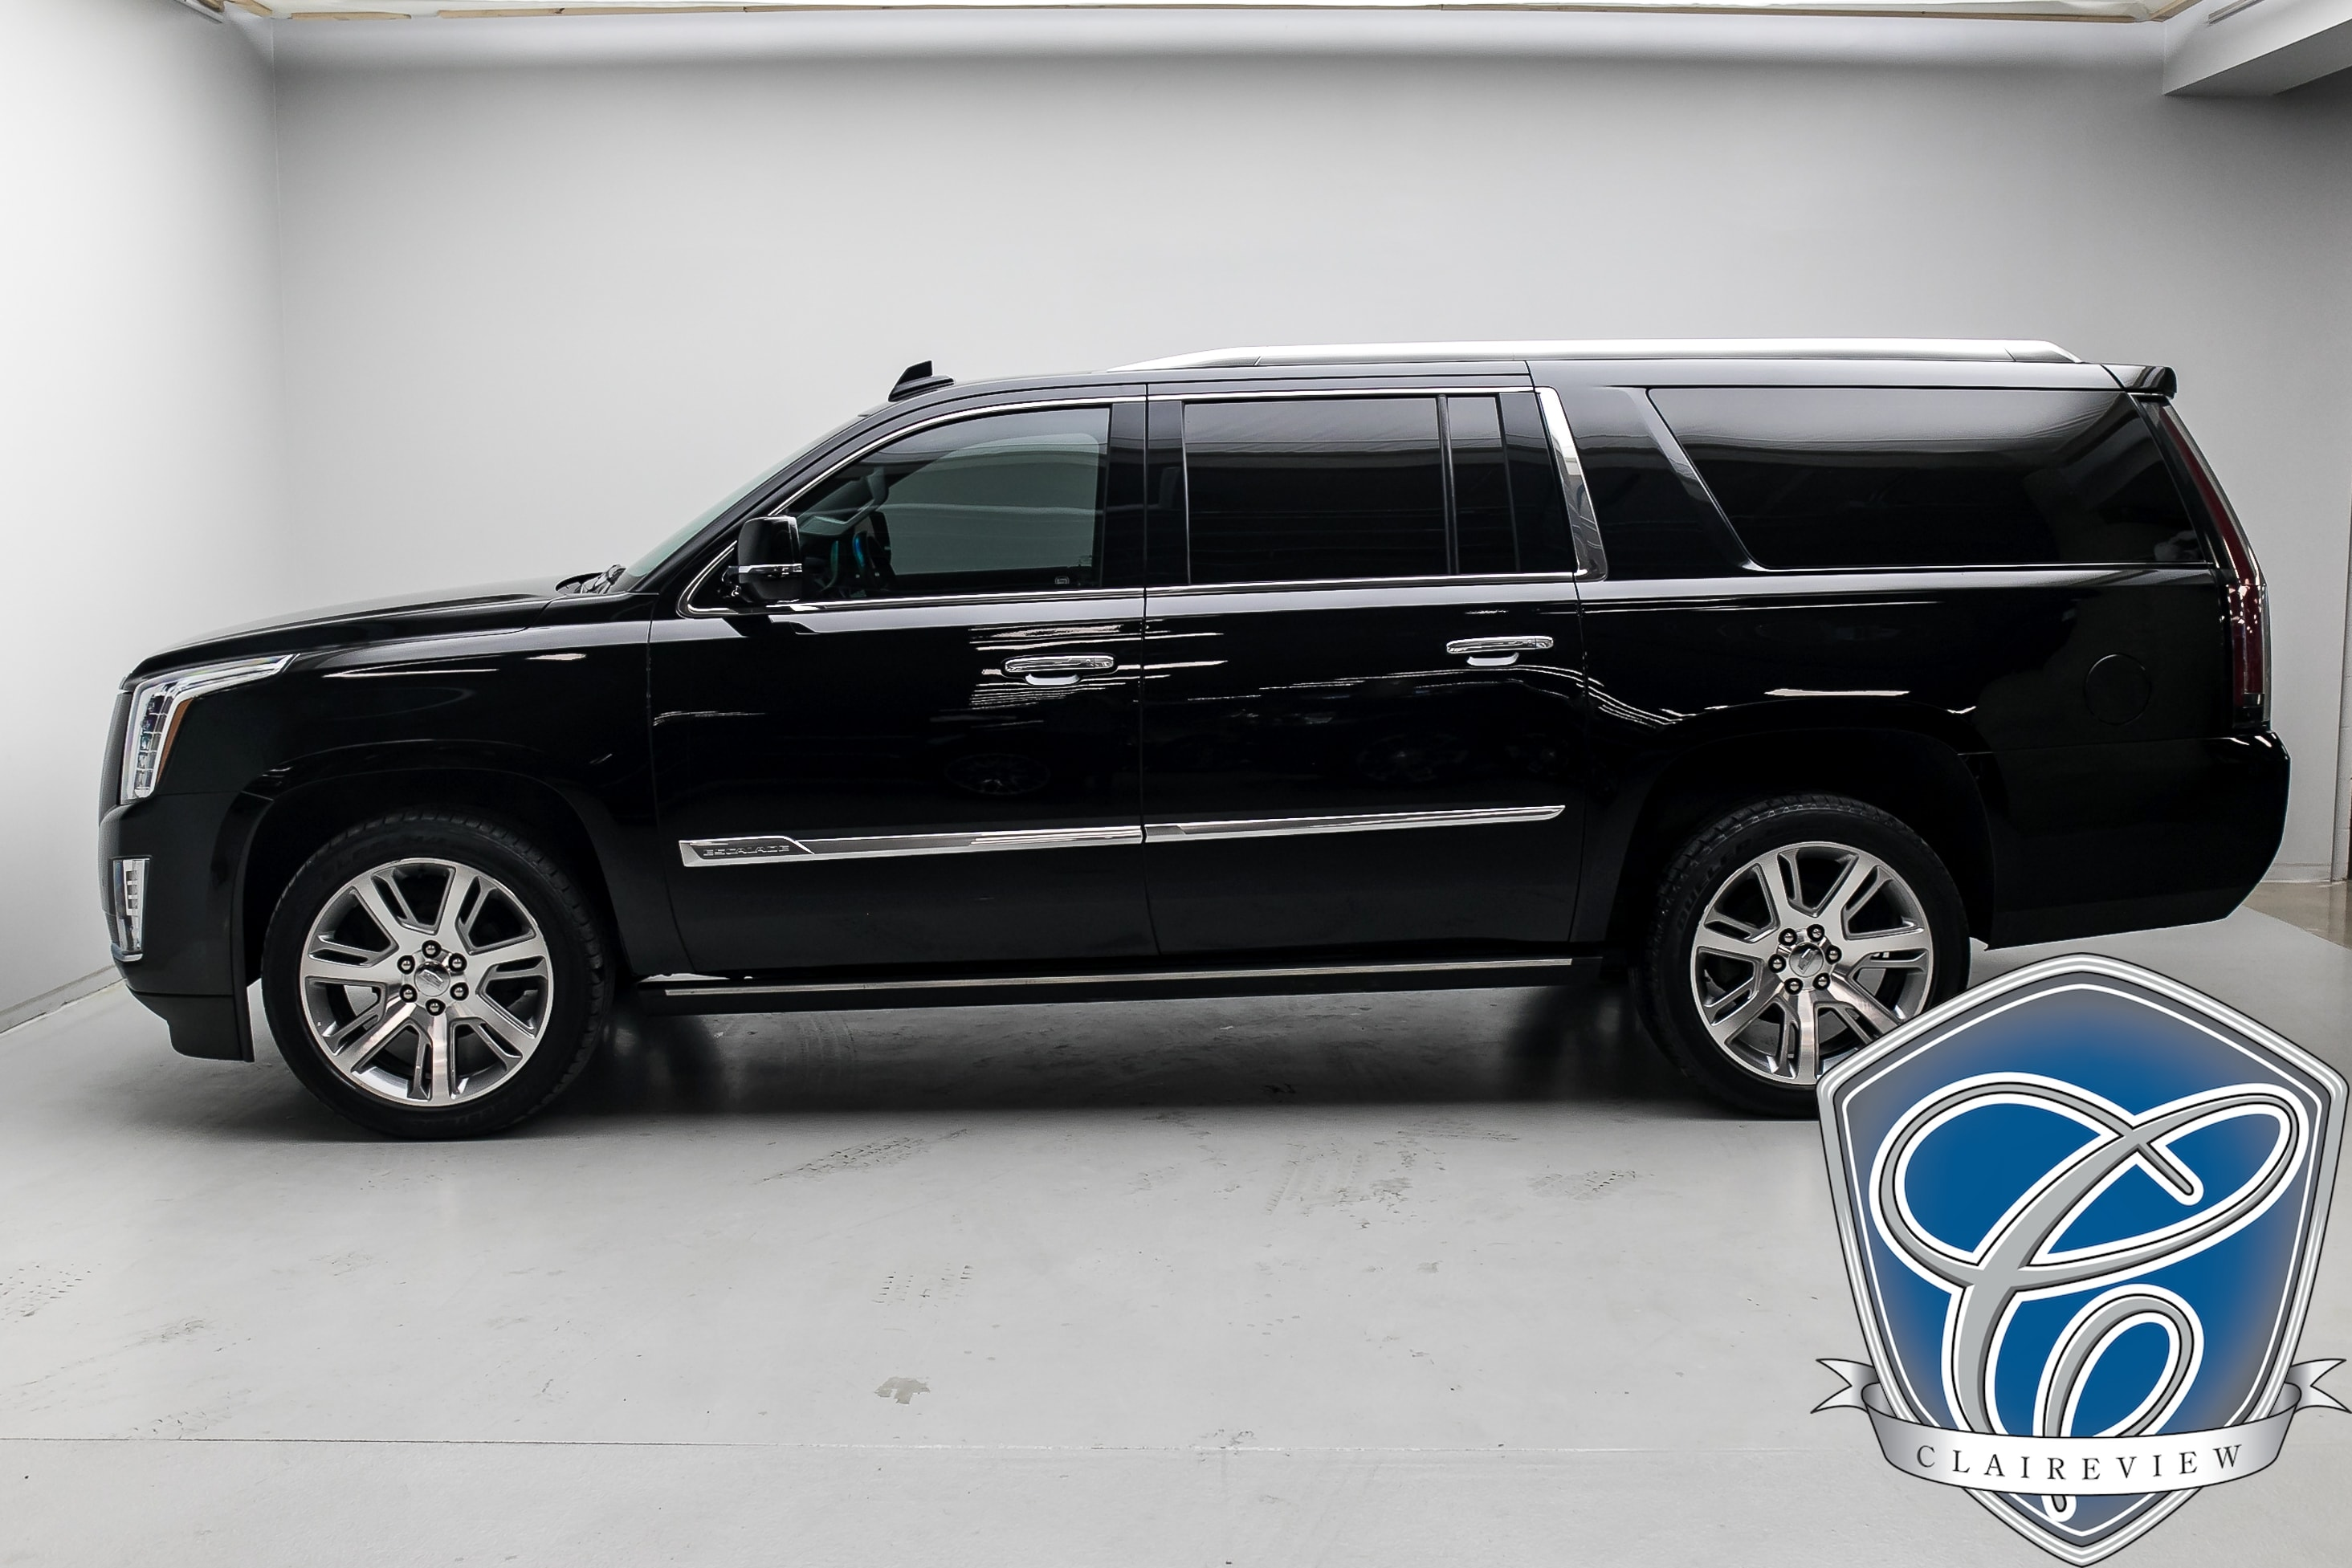 2015 CADILLAC Escalade ESV Premium Pkg, 22in Wheels, DVD, Navi, 7 Pass VUS